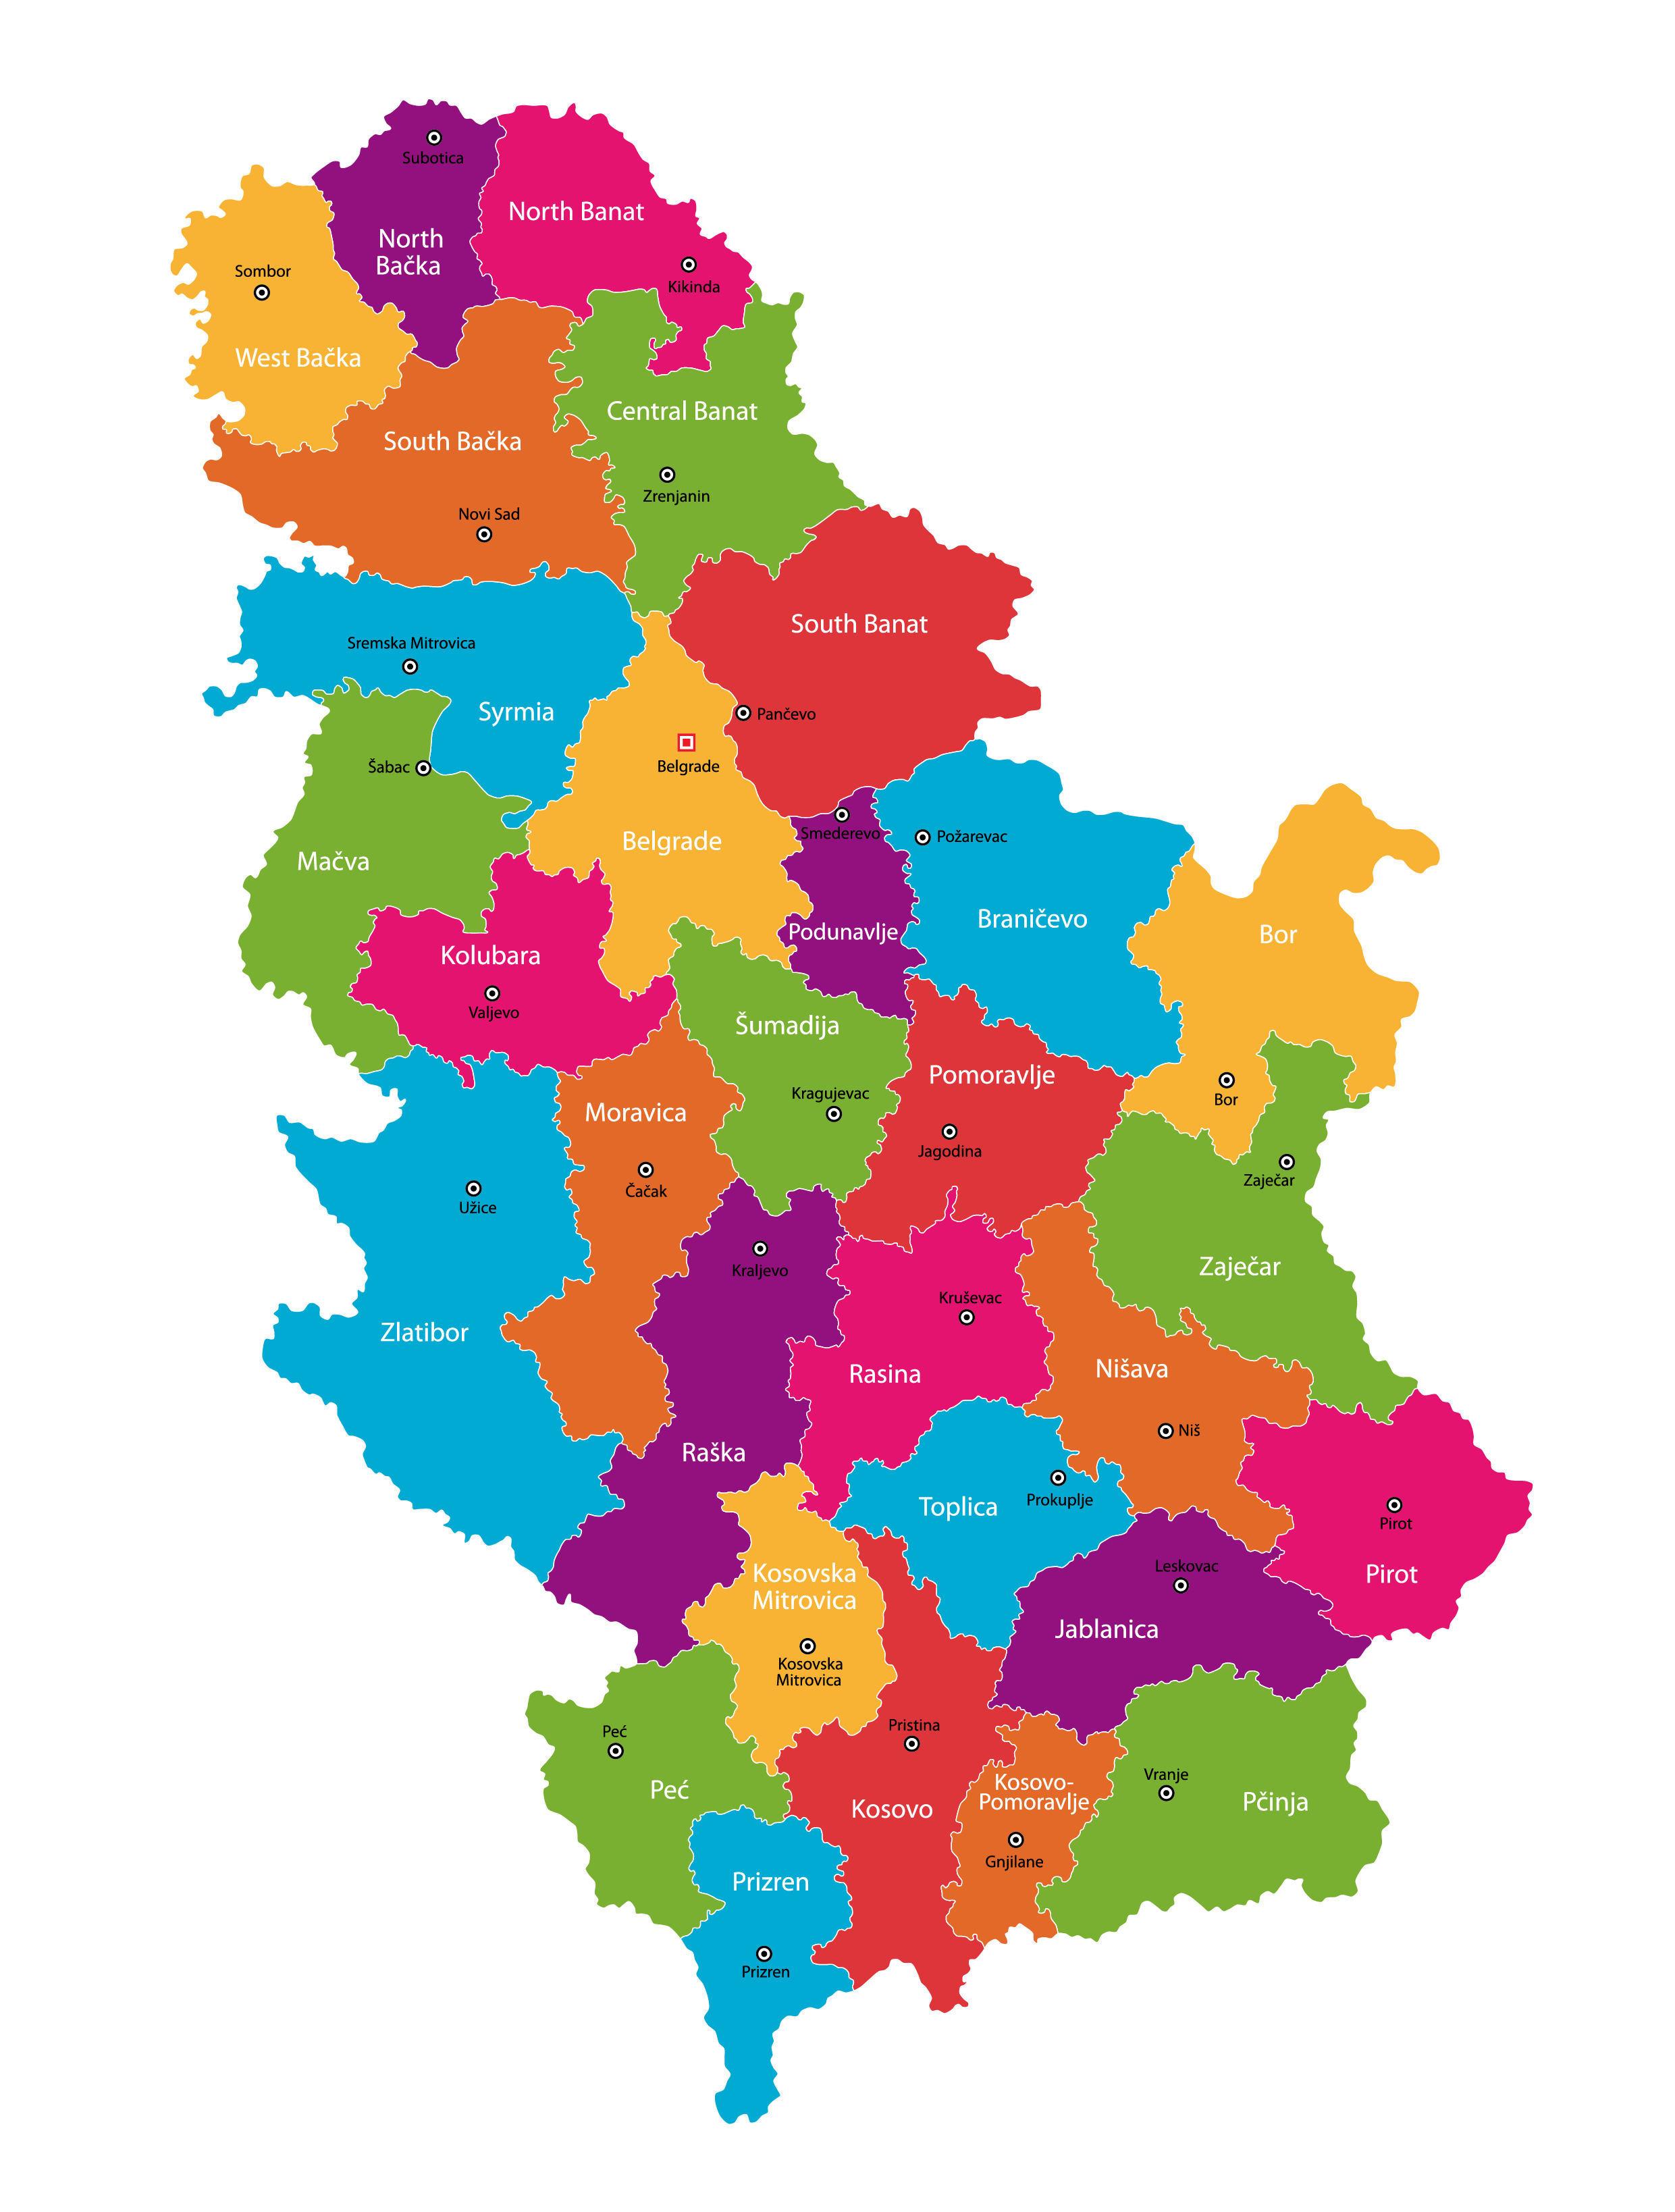 Political Map of Serbia showing its 29 districts,145 municipalities and 29 cities and the capital city of Belgrade